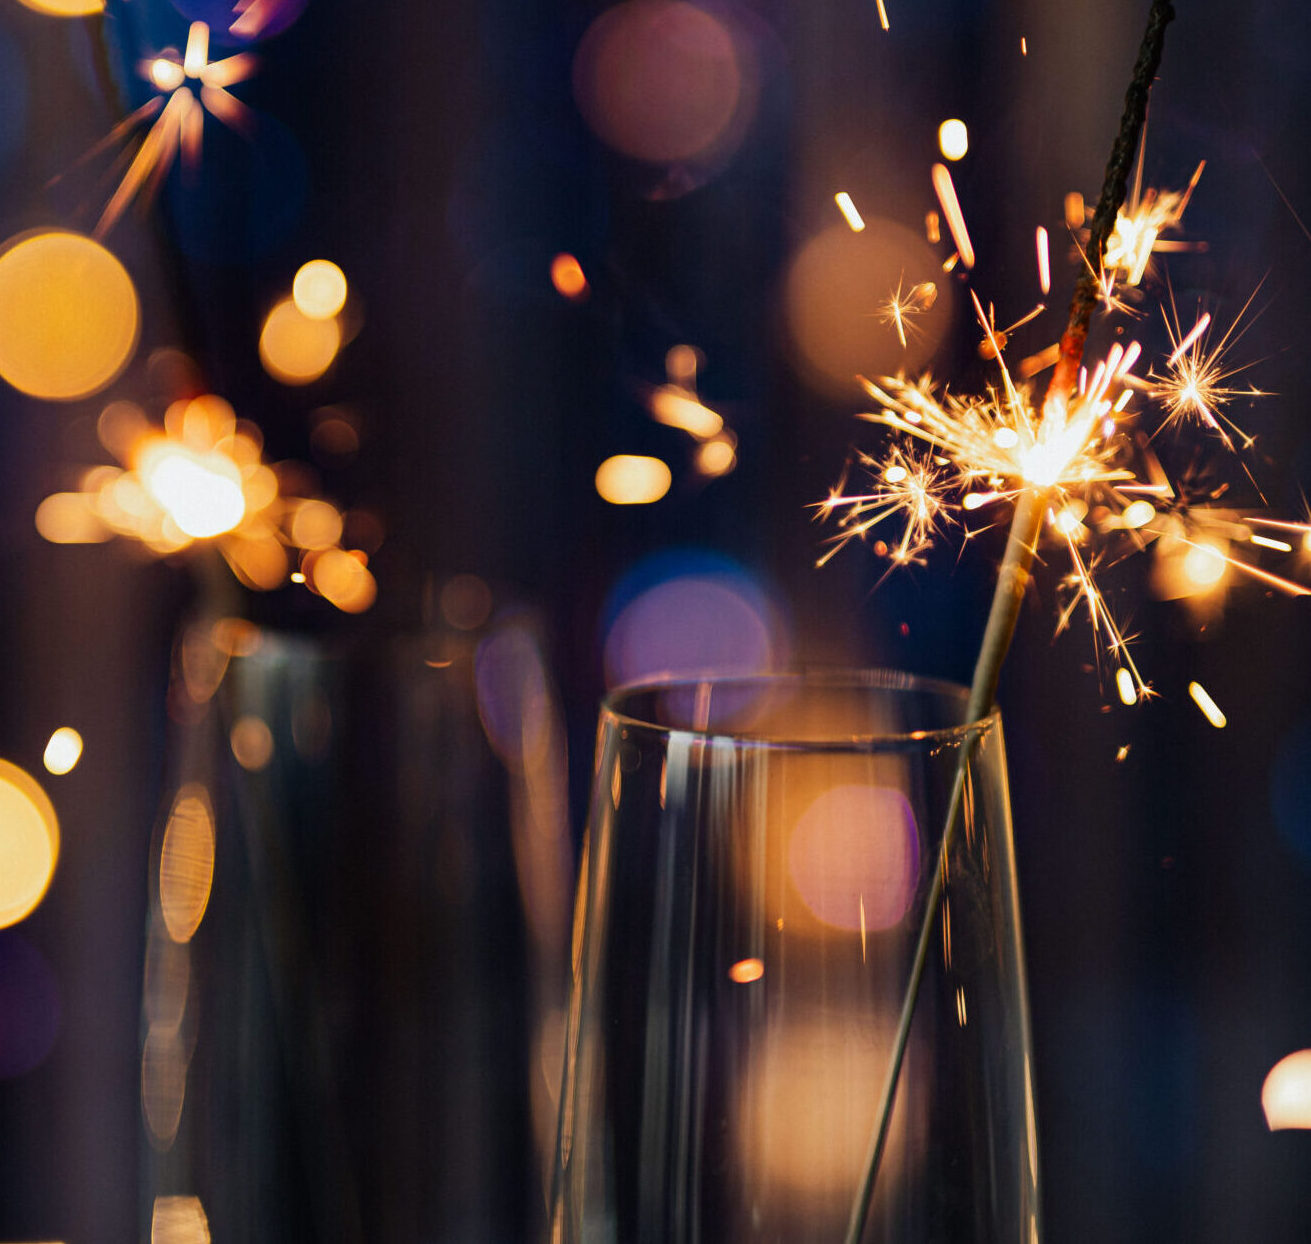 kaboompics_New Year's Eve - cold fires in glasses on a blue background